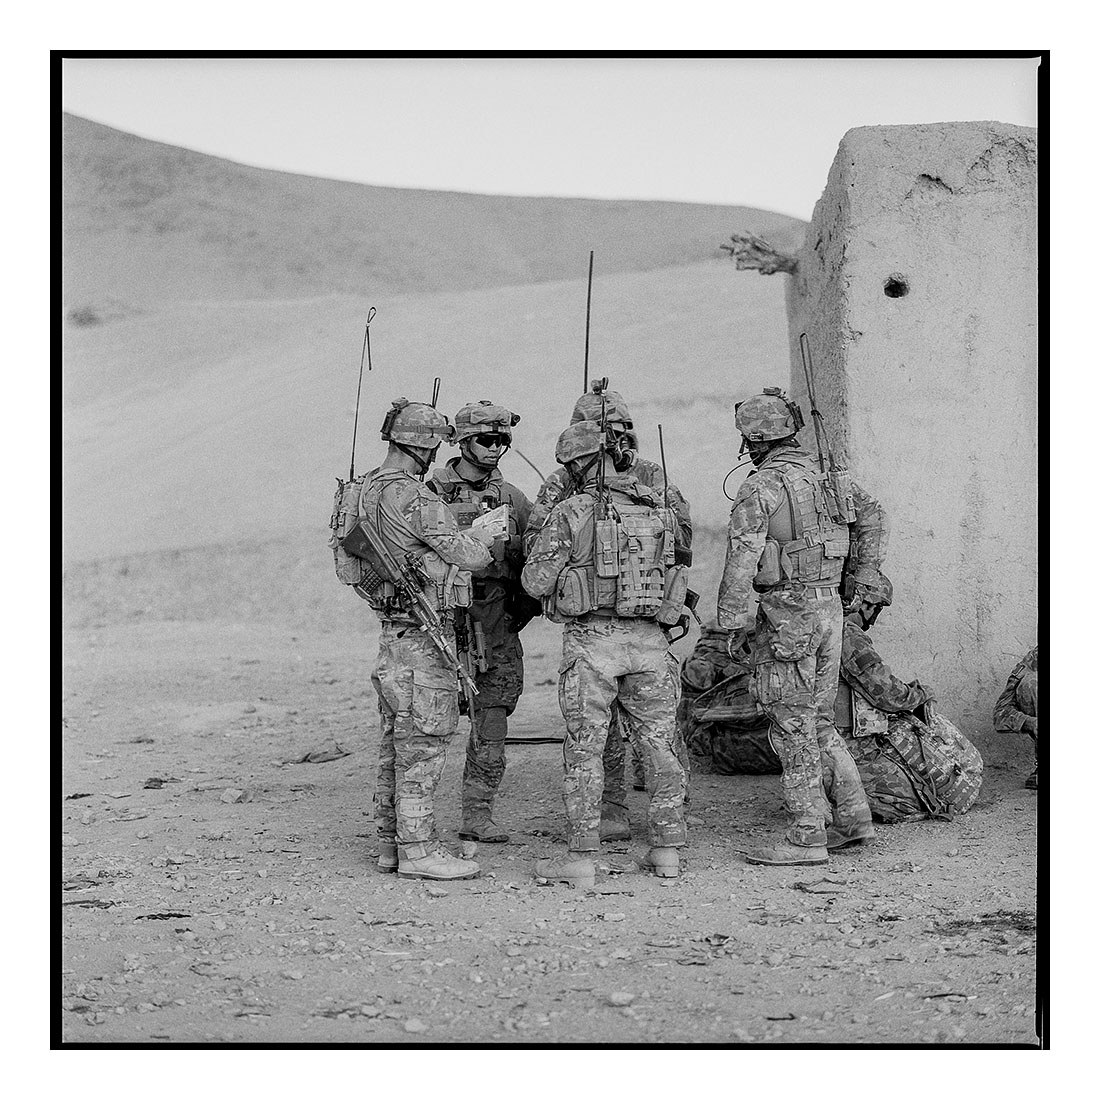 Briefing  (2011) Archival pigment prints on Ilford paper 40cm x 40cm | Edition of 25 + 3 Artist Proofs 100cm x 100cm | Edition of 10 + 3 Artist Proofs